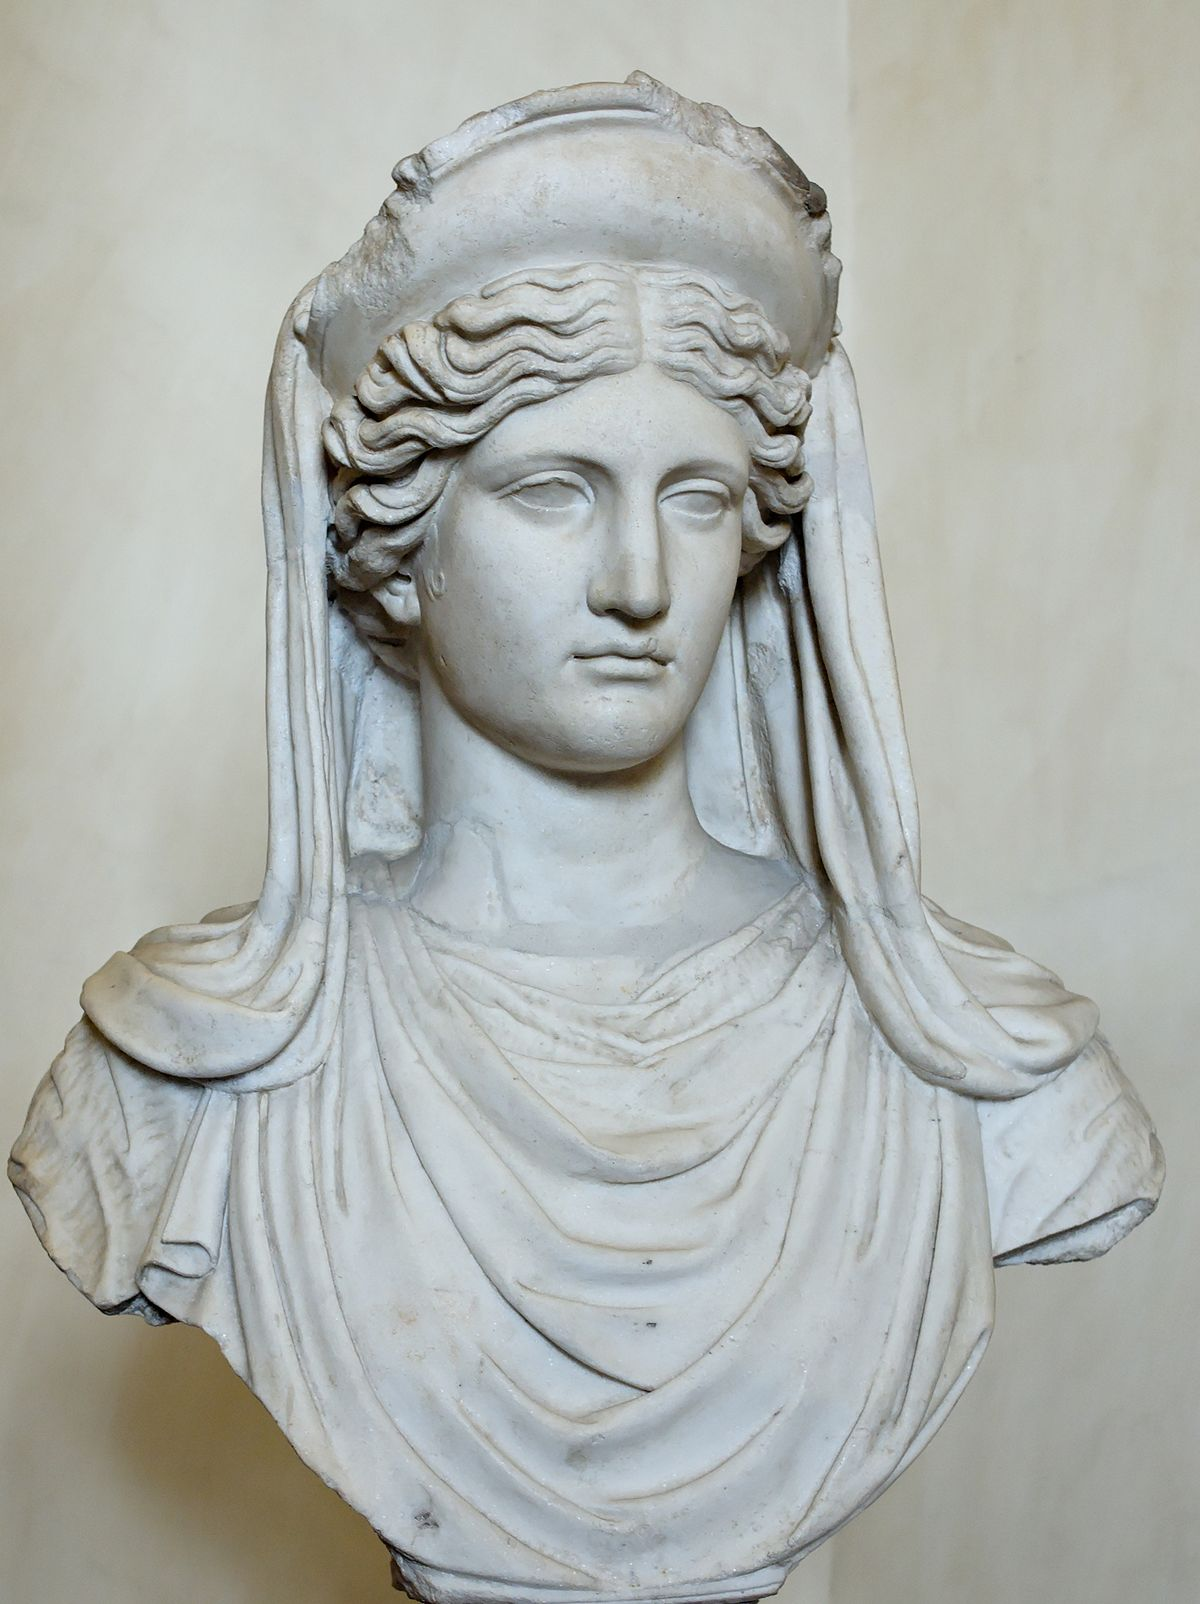 An analysis of the representations of aphrodite an ancient greek goddess in art